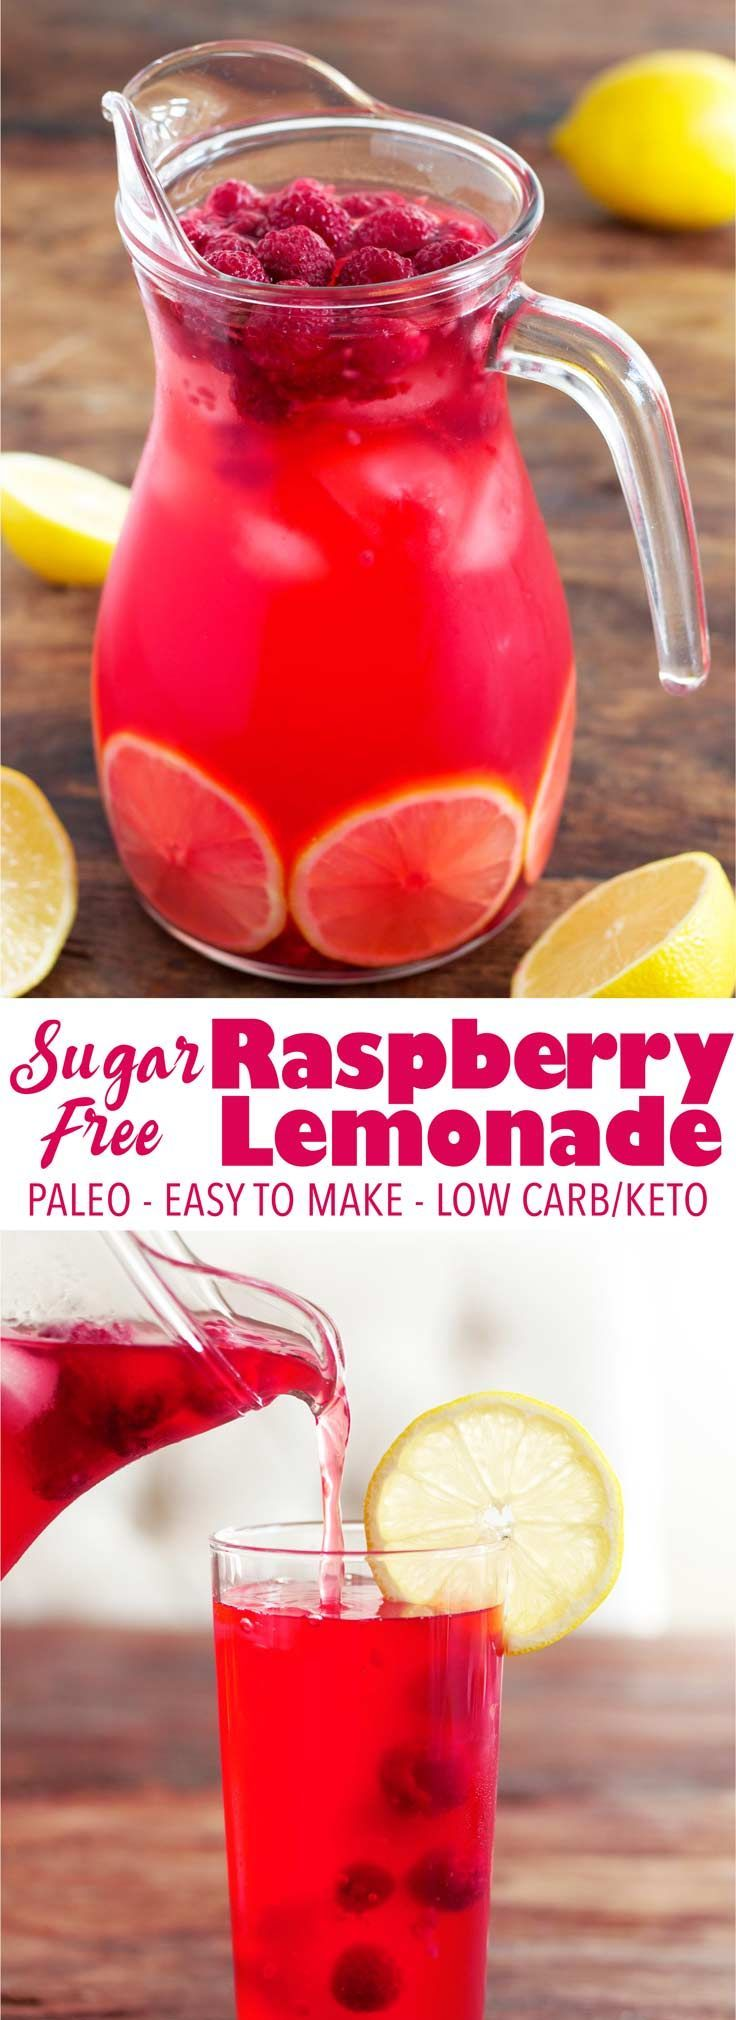 than 5 minutes to make, 35 calories per serving, no sketchy ingredients, and loaded with vitamin C! Low carb/keto, paleo, vegan.